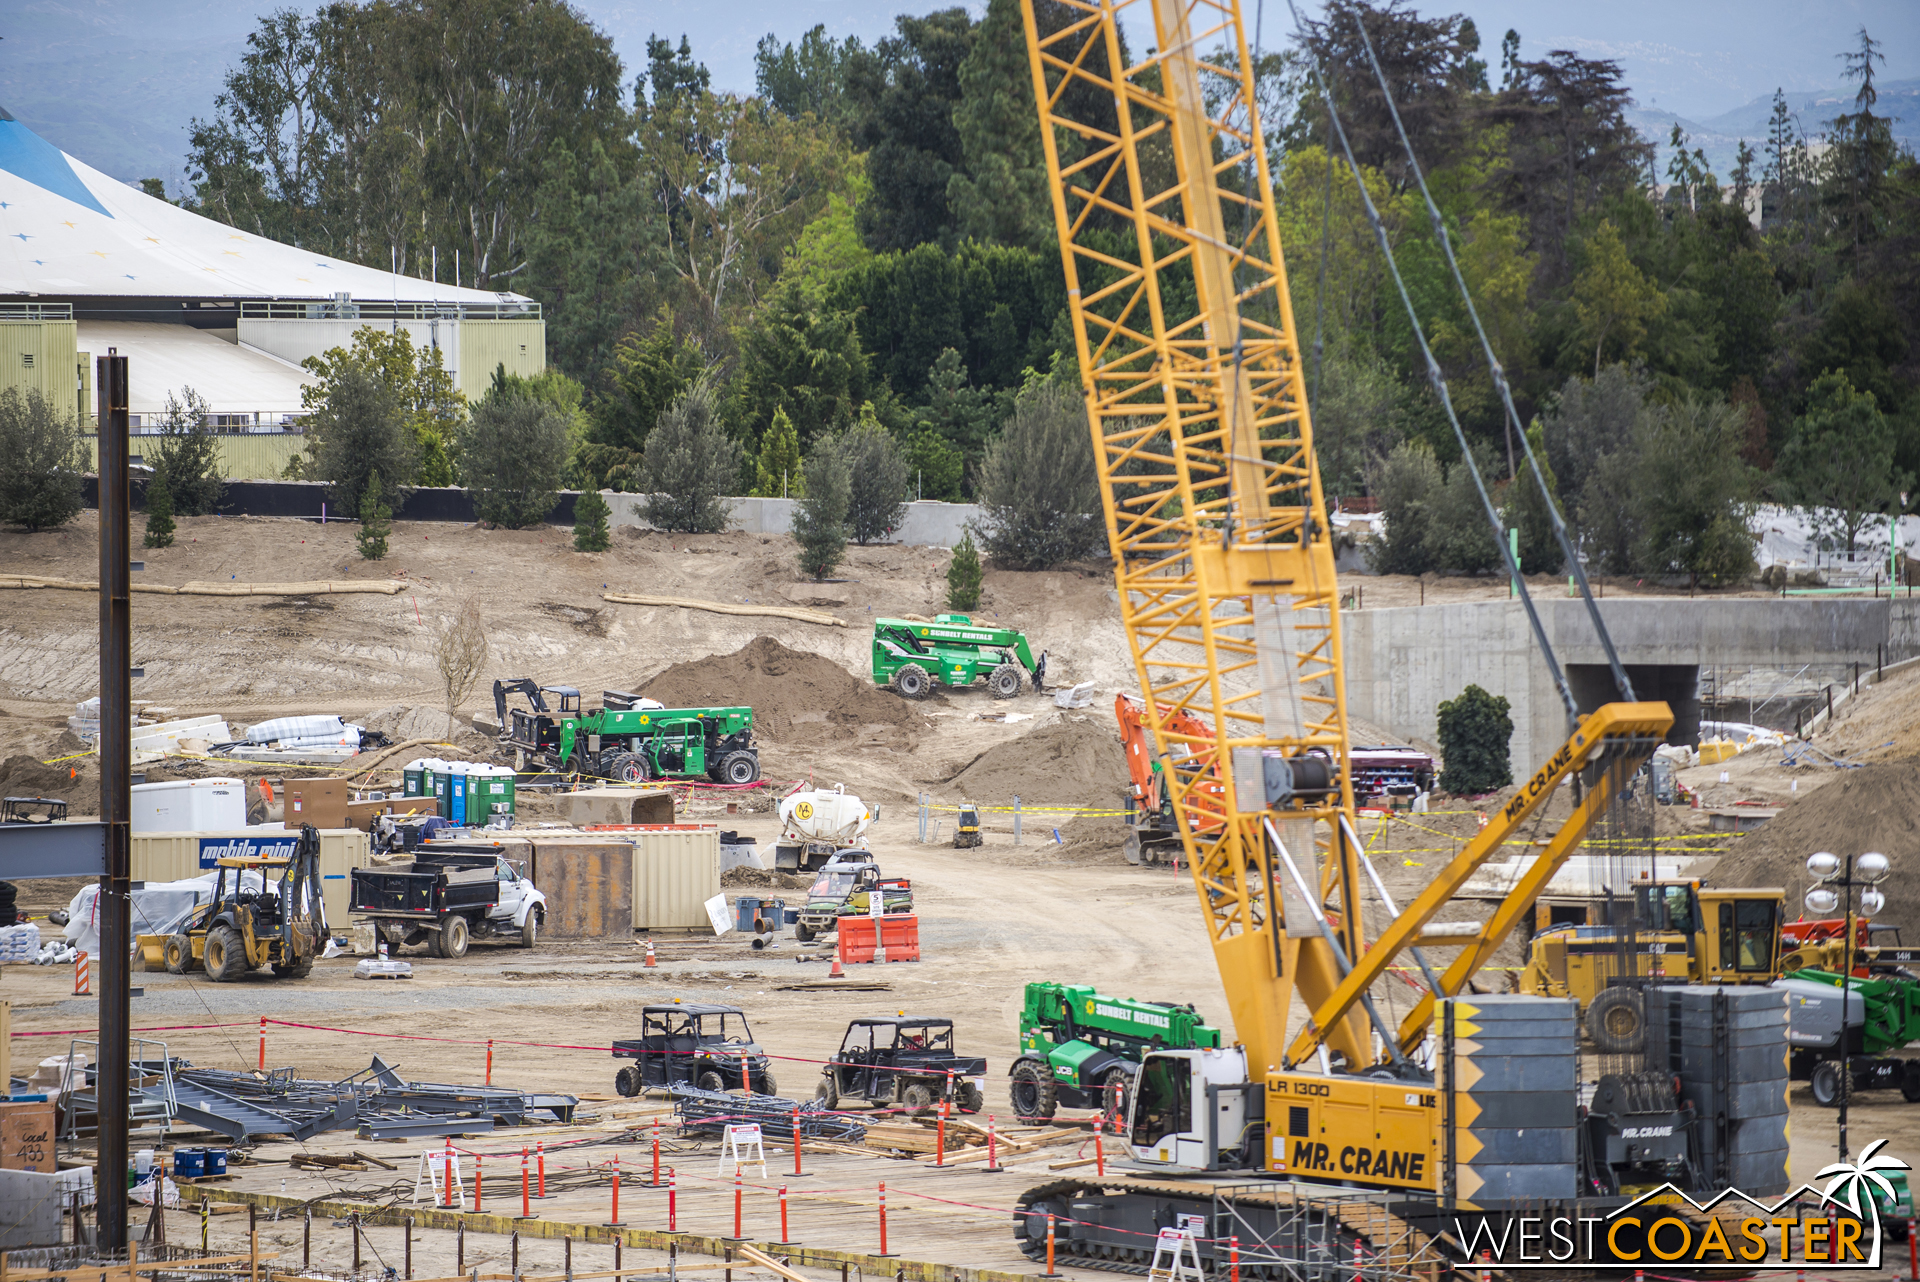 But the green construction vehicles seem to indicate that some soil work has been ongoing.